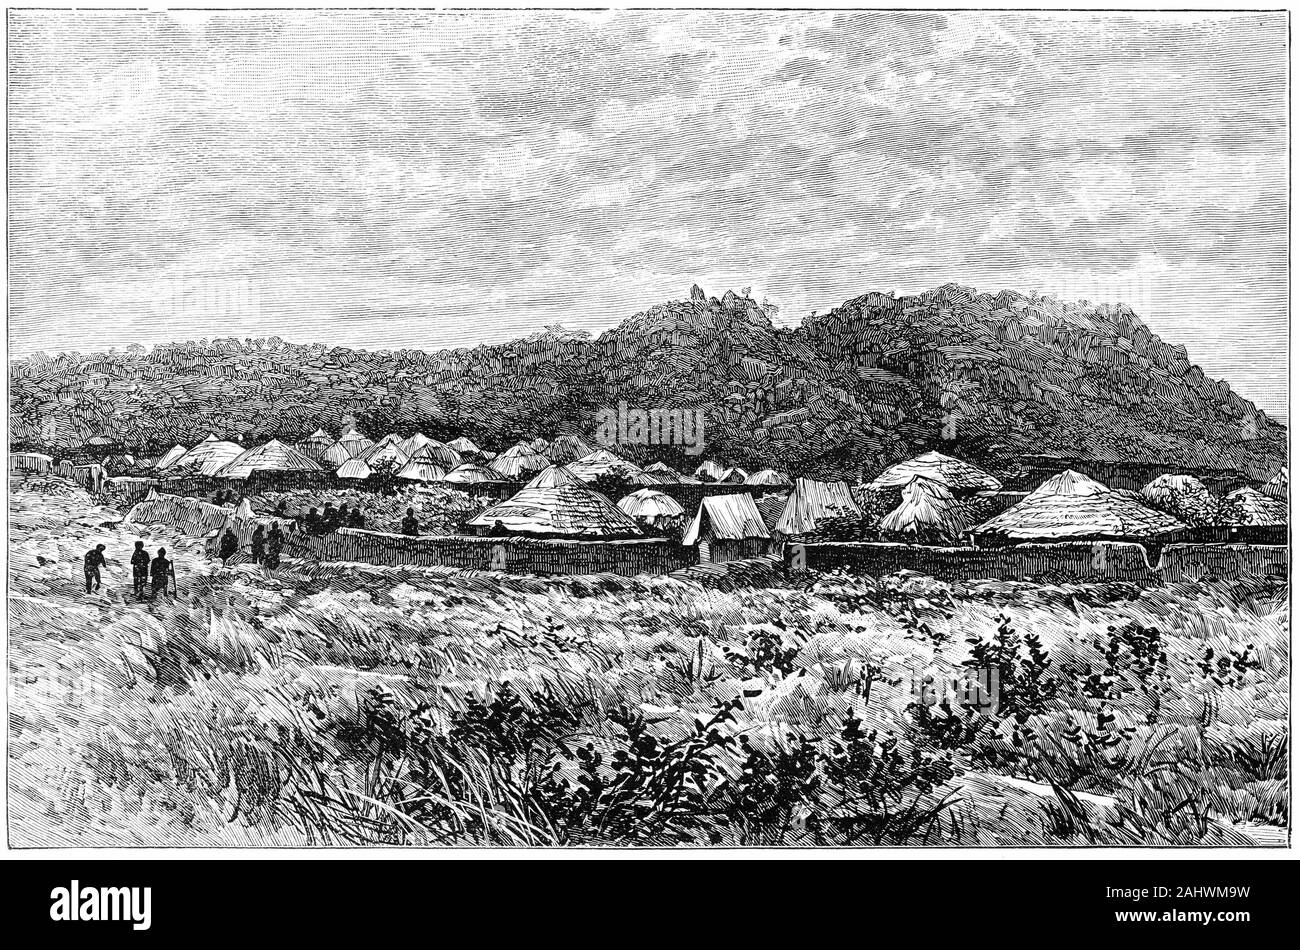 Engraving of a small African village in Uganda during the 1800s. Stock Photo